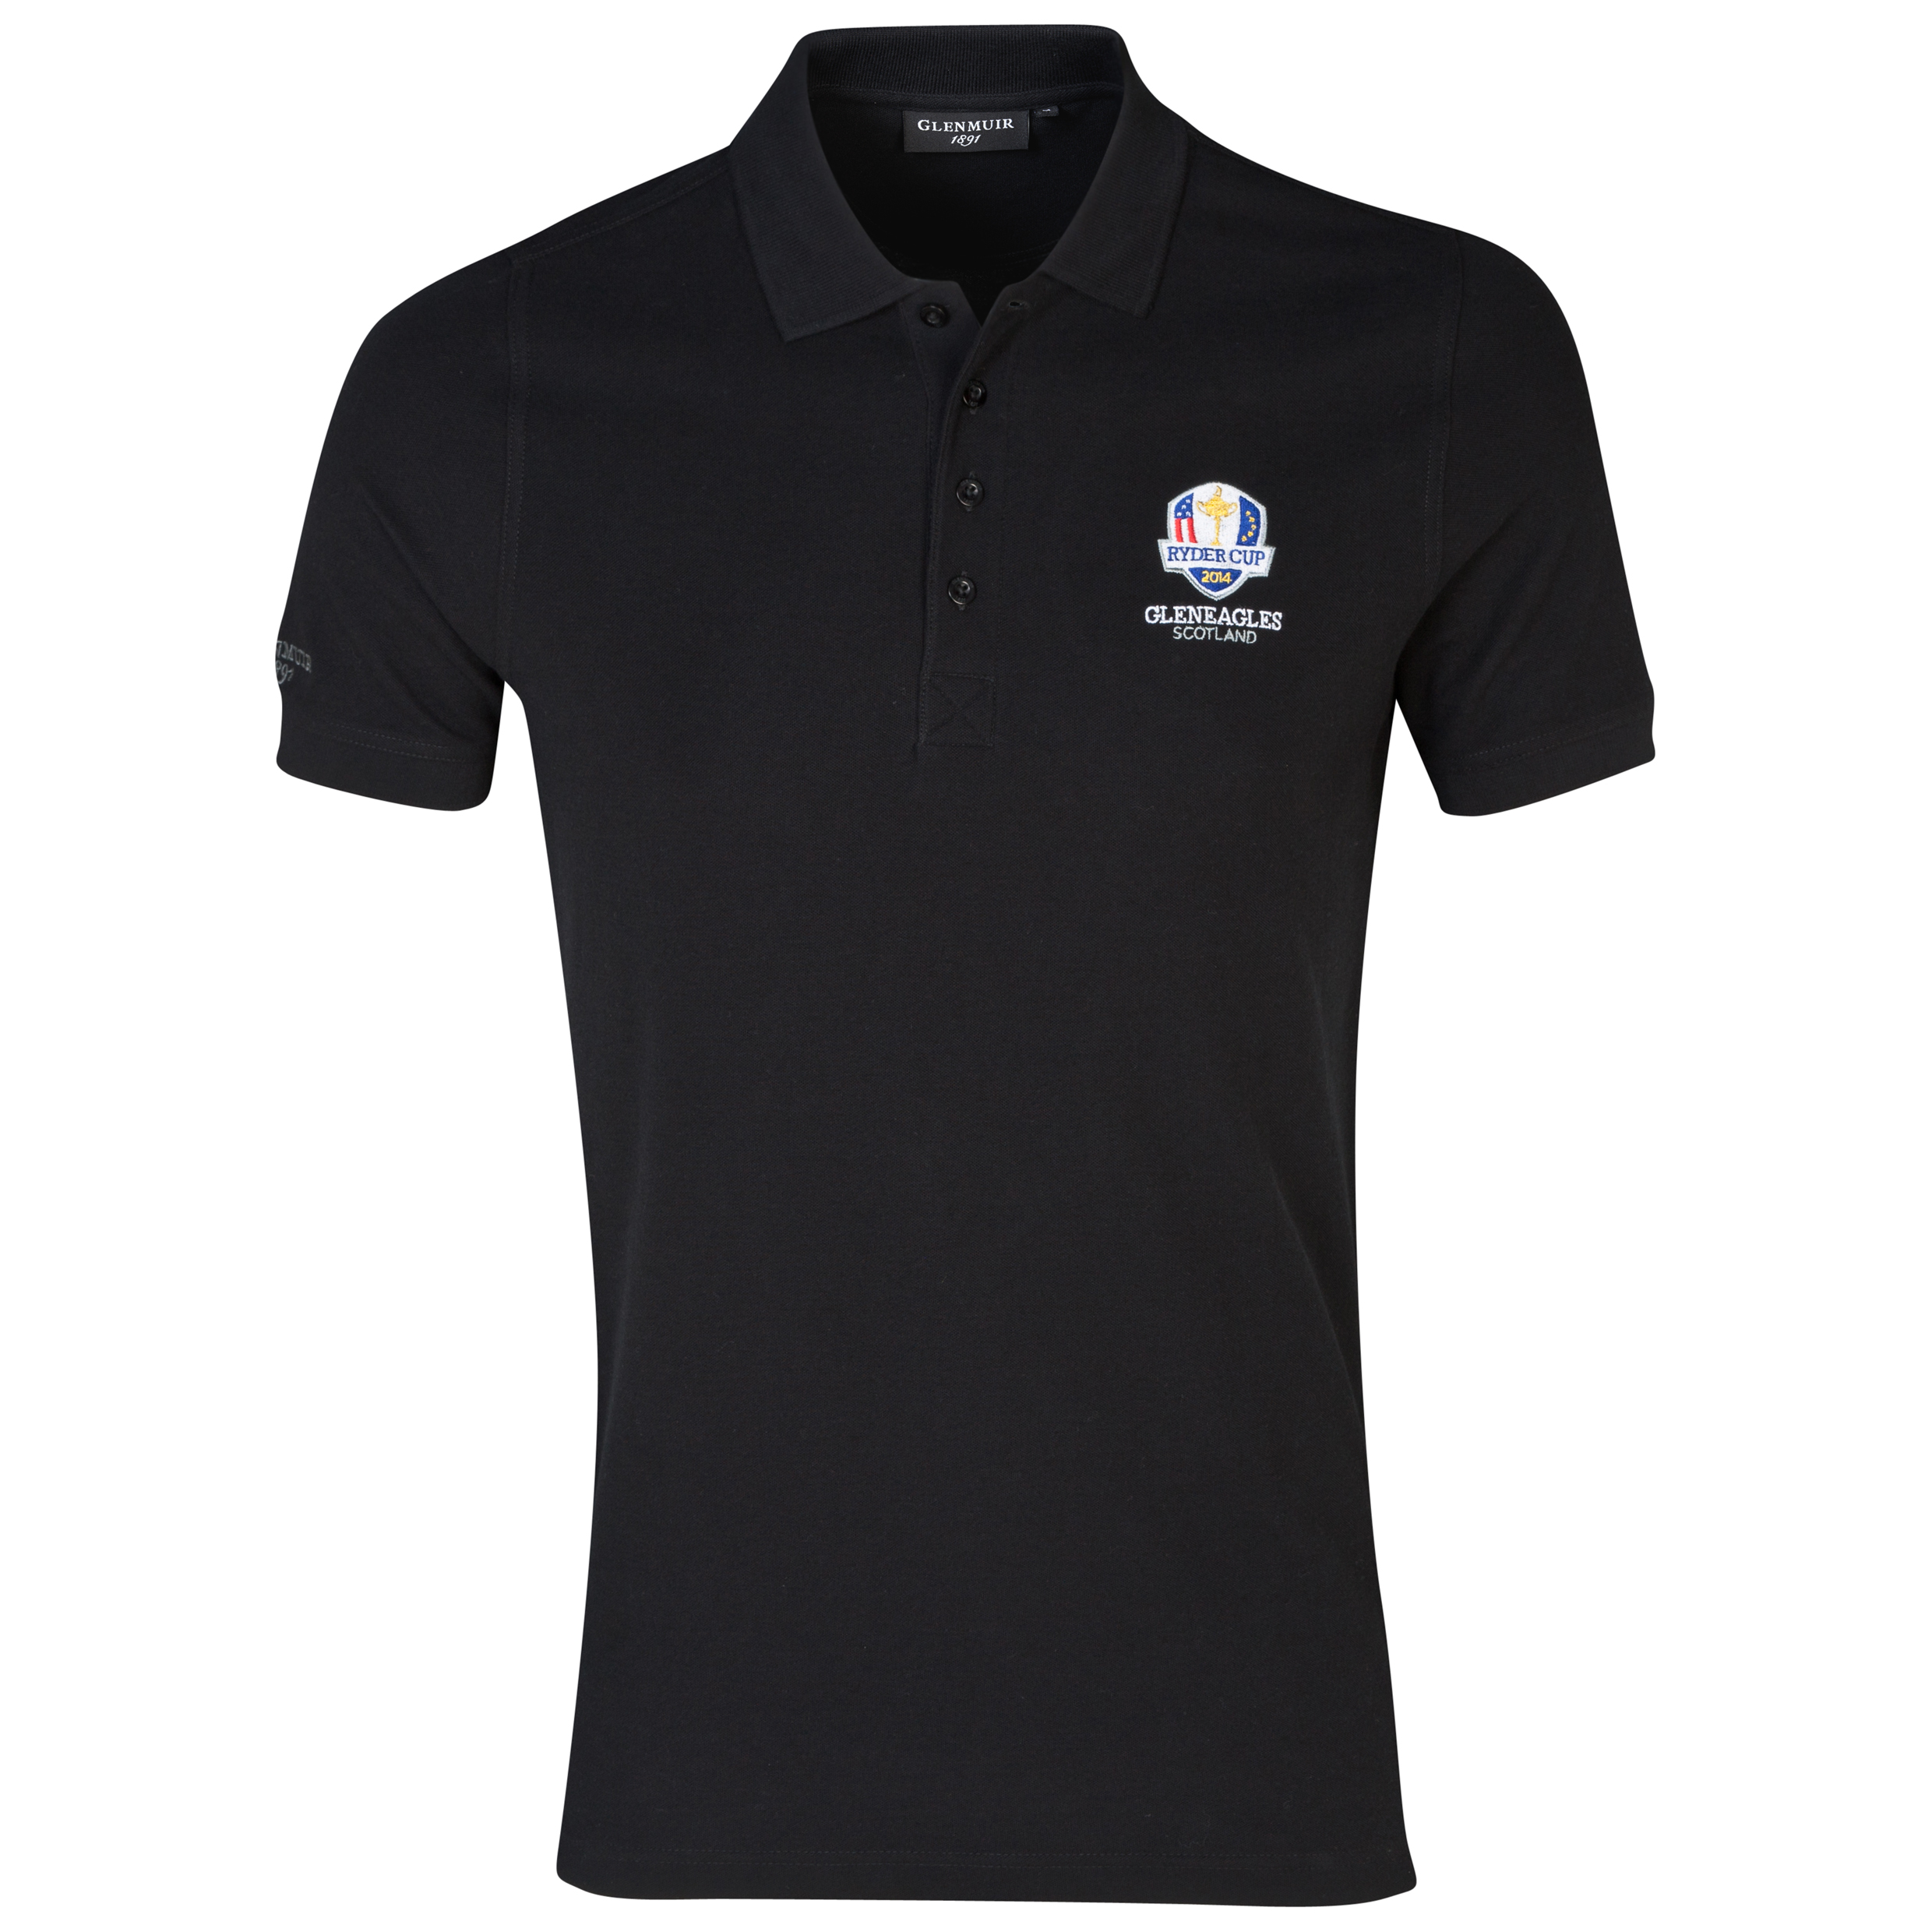 The 2014 Ryder Cup Glenmuir Kinloch Cotton Polo Black